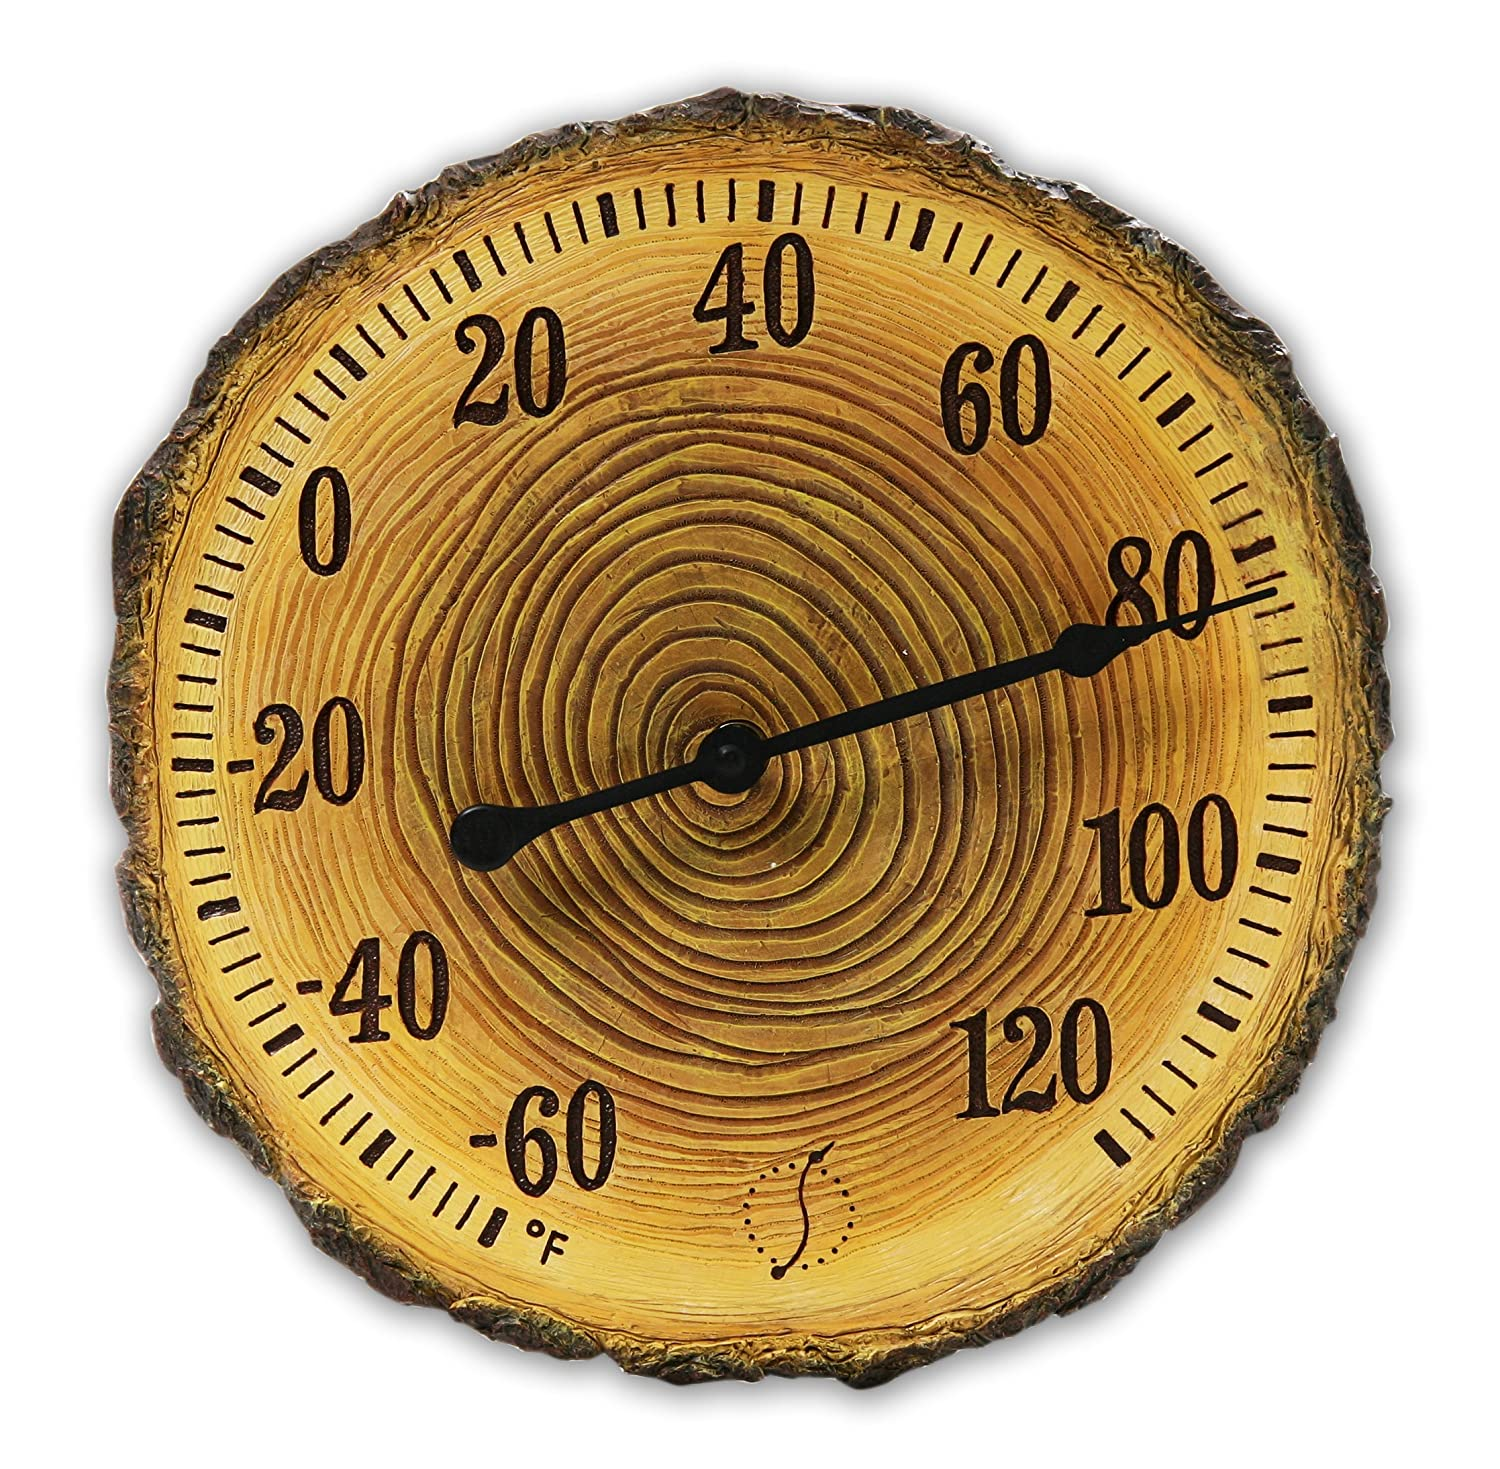 Amazon springfield 91719 12 tree trunk cross section amazon springfield 91719 12 tree trunk cross section polystone thermometer outdoor thermometers garden outdoor amipublicfo Gallery